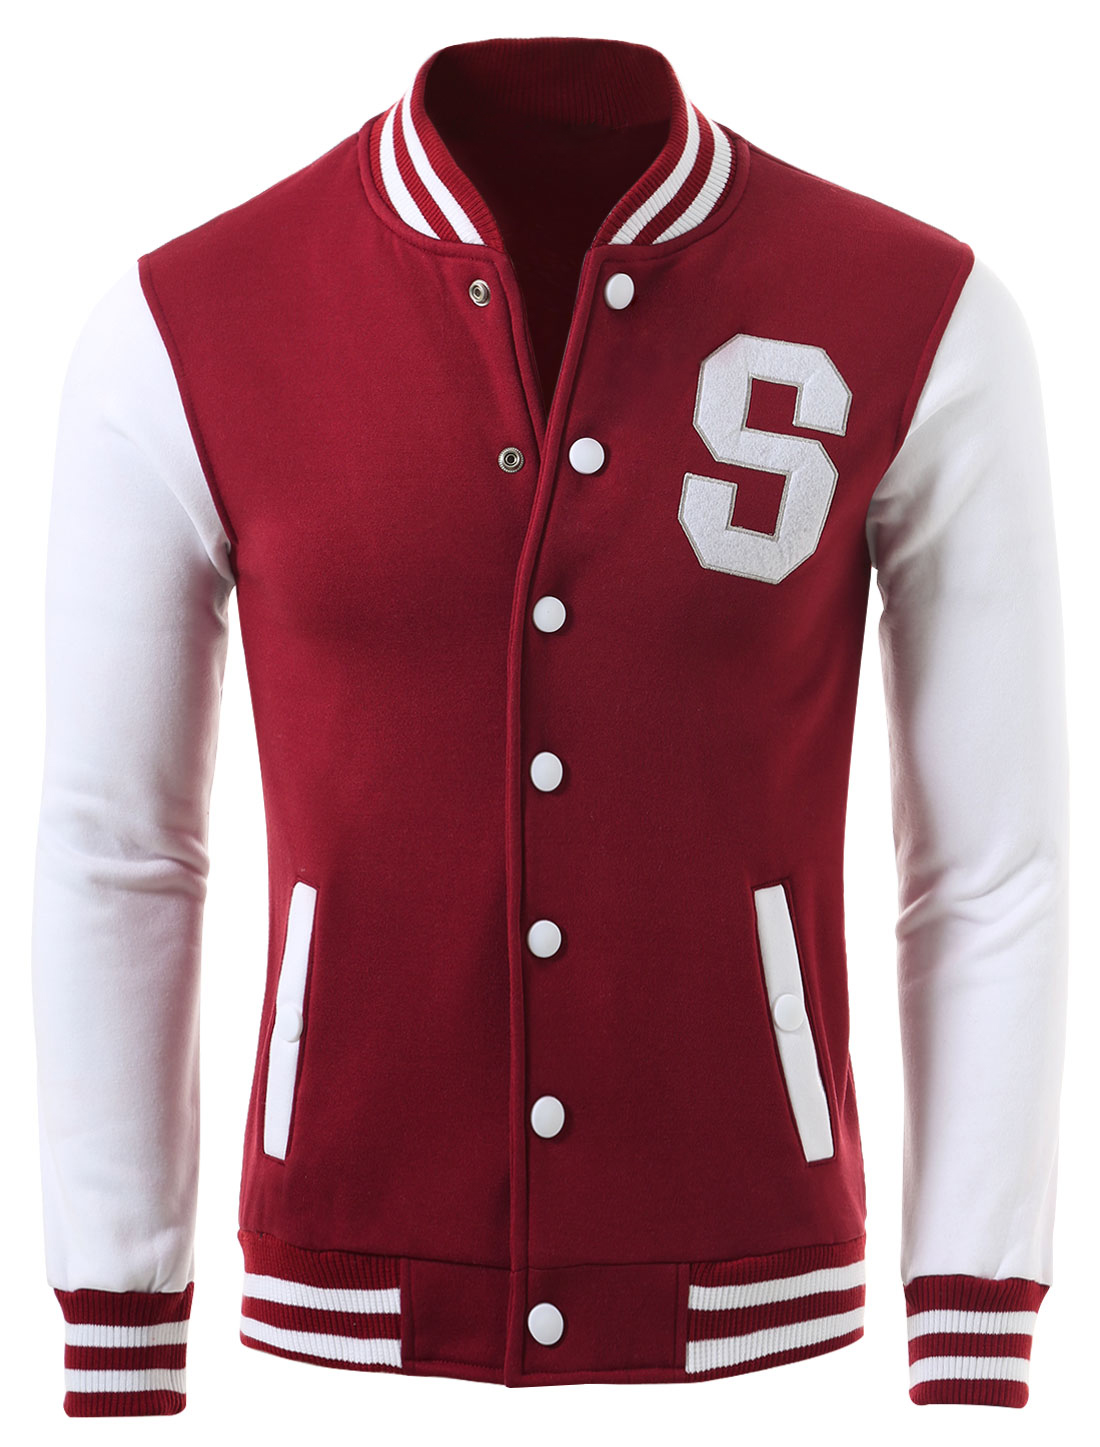 Men Two Sides Pockets Button Closure Letterman Baseball Jacket Burgundy M